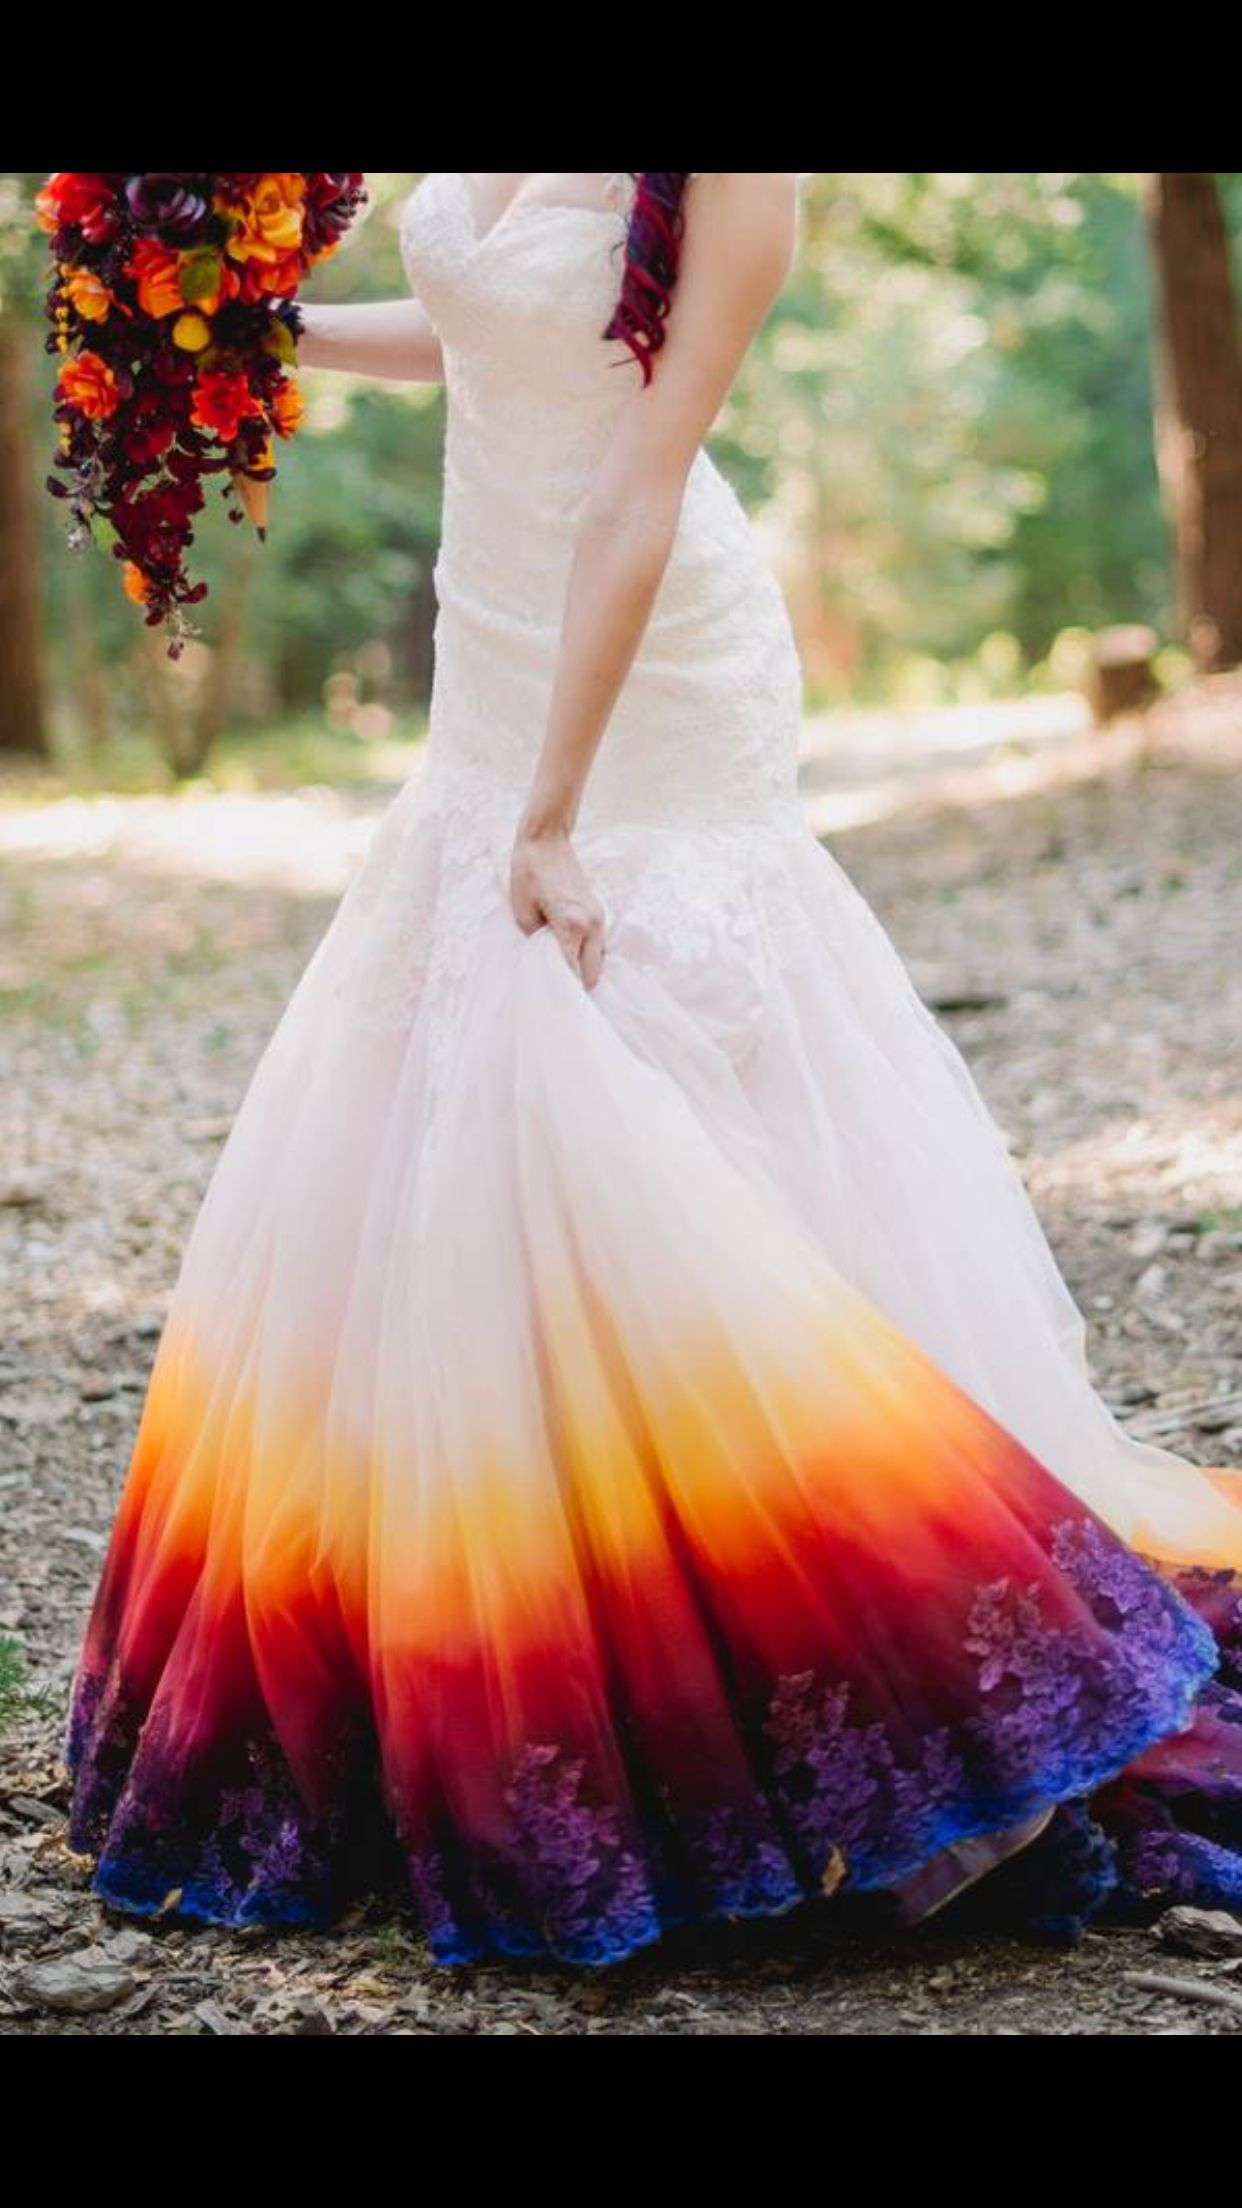 Different color wedding dresses  Pin by Ravanna Wallace on Wedding dress and tux  Pinterest